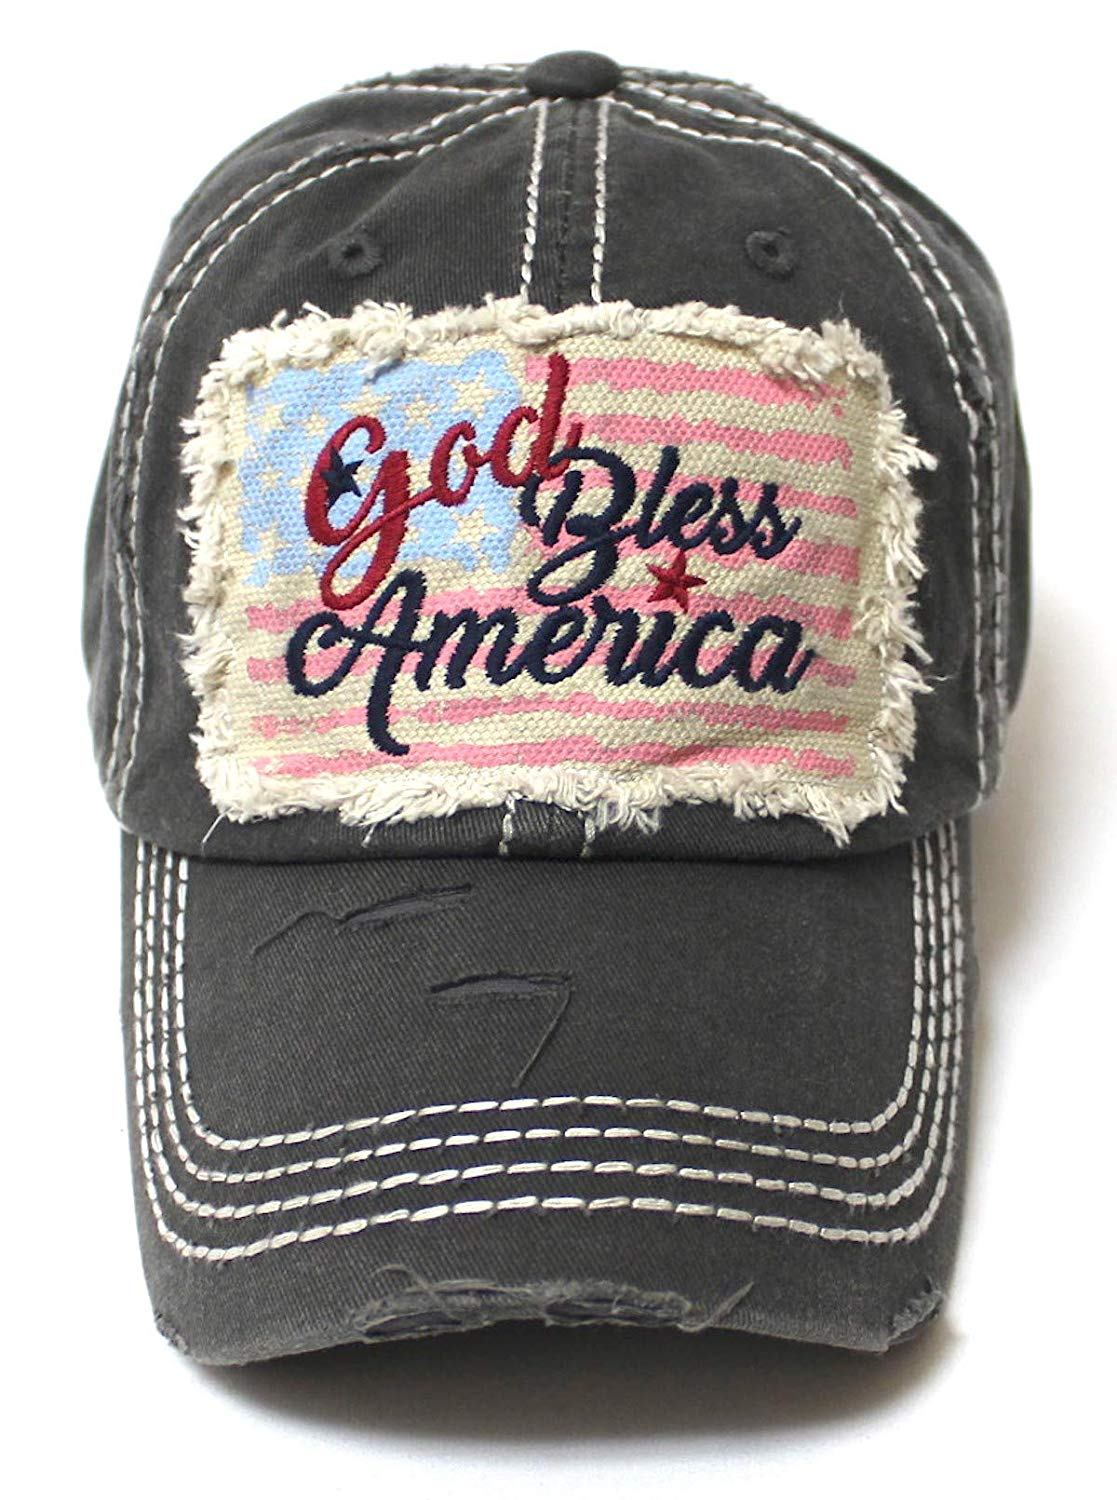 July 4 Celebratory USA Flag Patch God Bless America Embroidery Ballcap, Vintage Charcoal Blk - Caps 'N Vintage